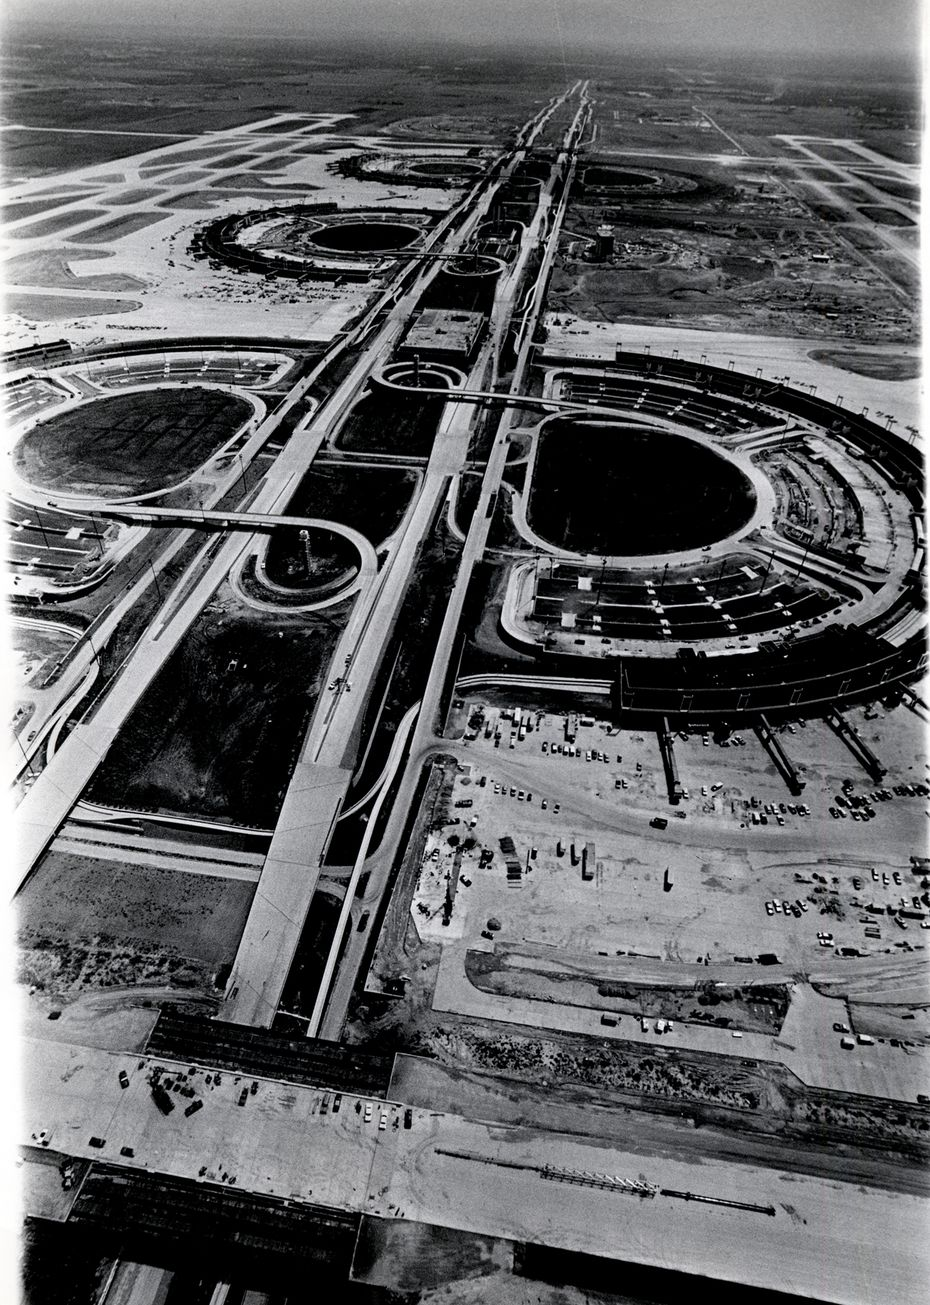 September 10, 1973 - Construction continues on the Dallas Fort Worth Regional Airport.